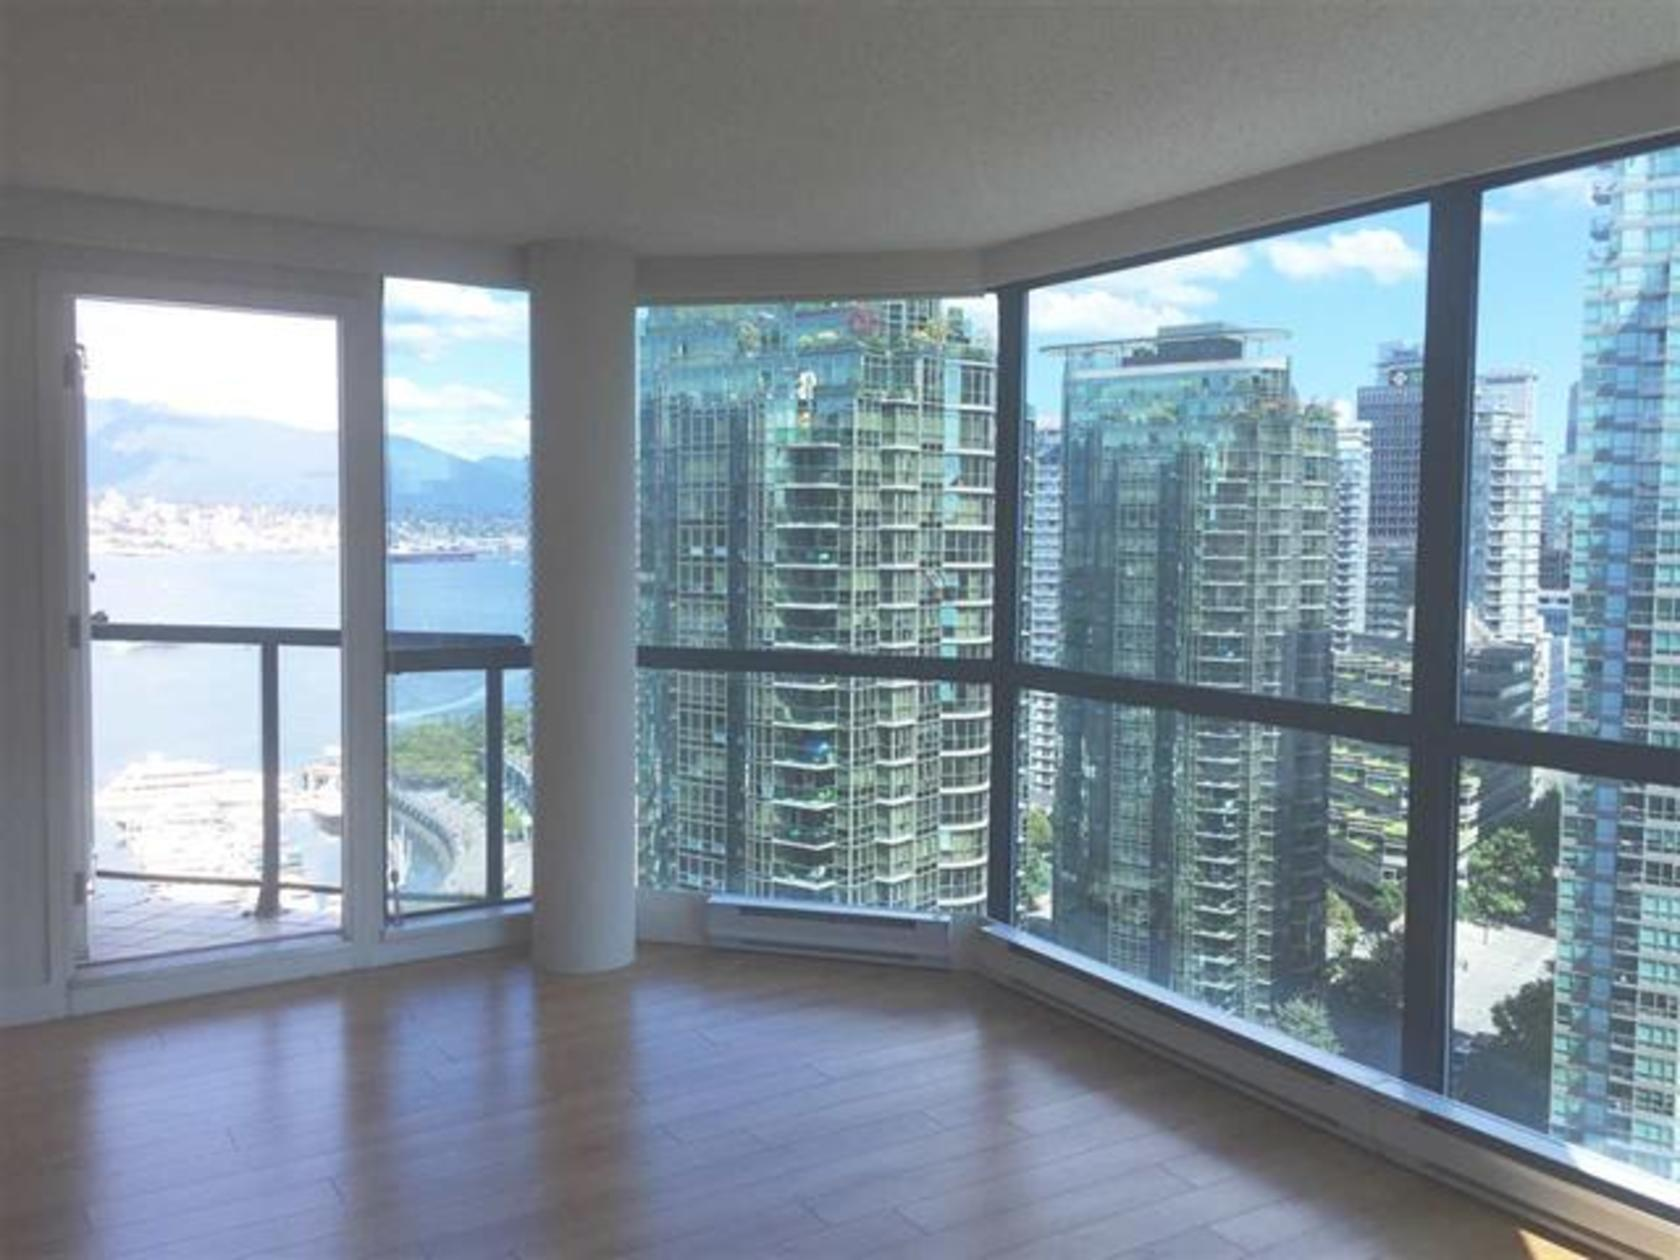 262209489-2 at 1704 - 1415 W Georgia Street, Coal Harbour, Vancouver West